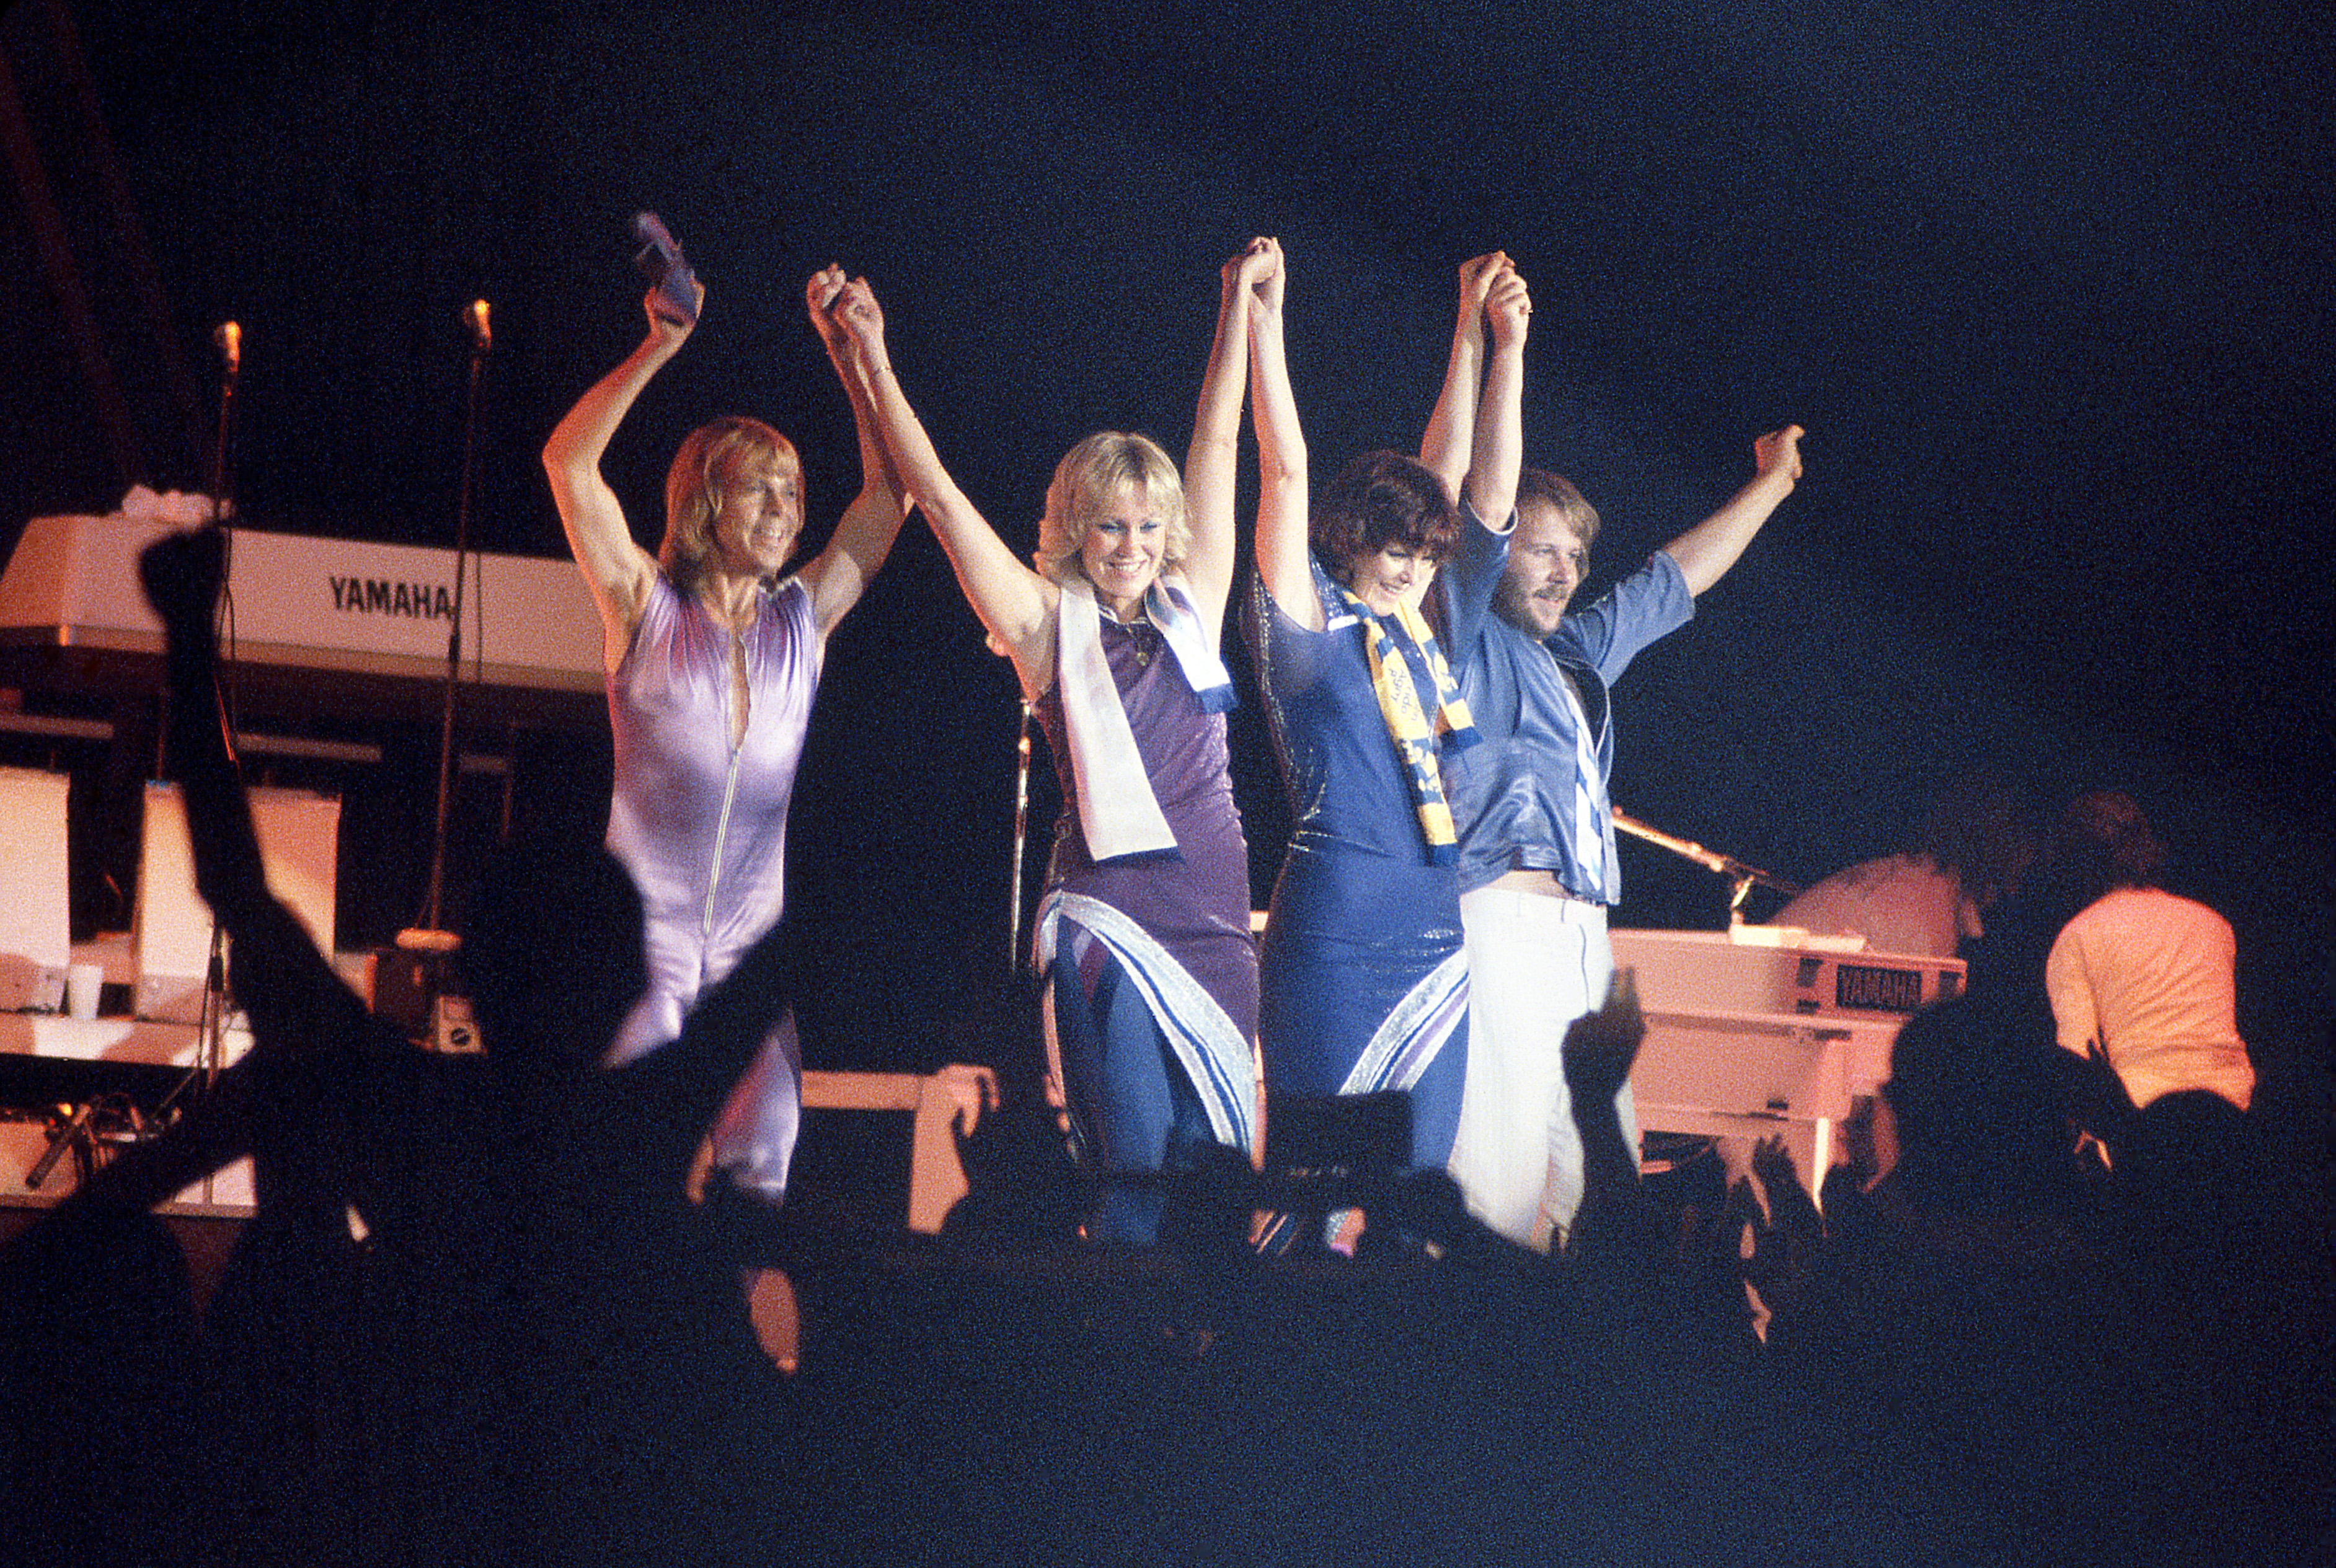 Unspecified: (L-R) Björn Ulvaeus, Agnetha Fältskog, Anni-Frid Lyngstad, Benny Andersson of ABBA performing. (Photo by ABC via Getty Images)